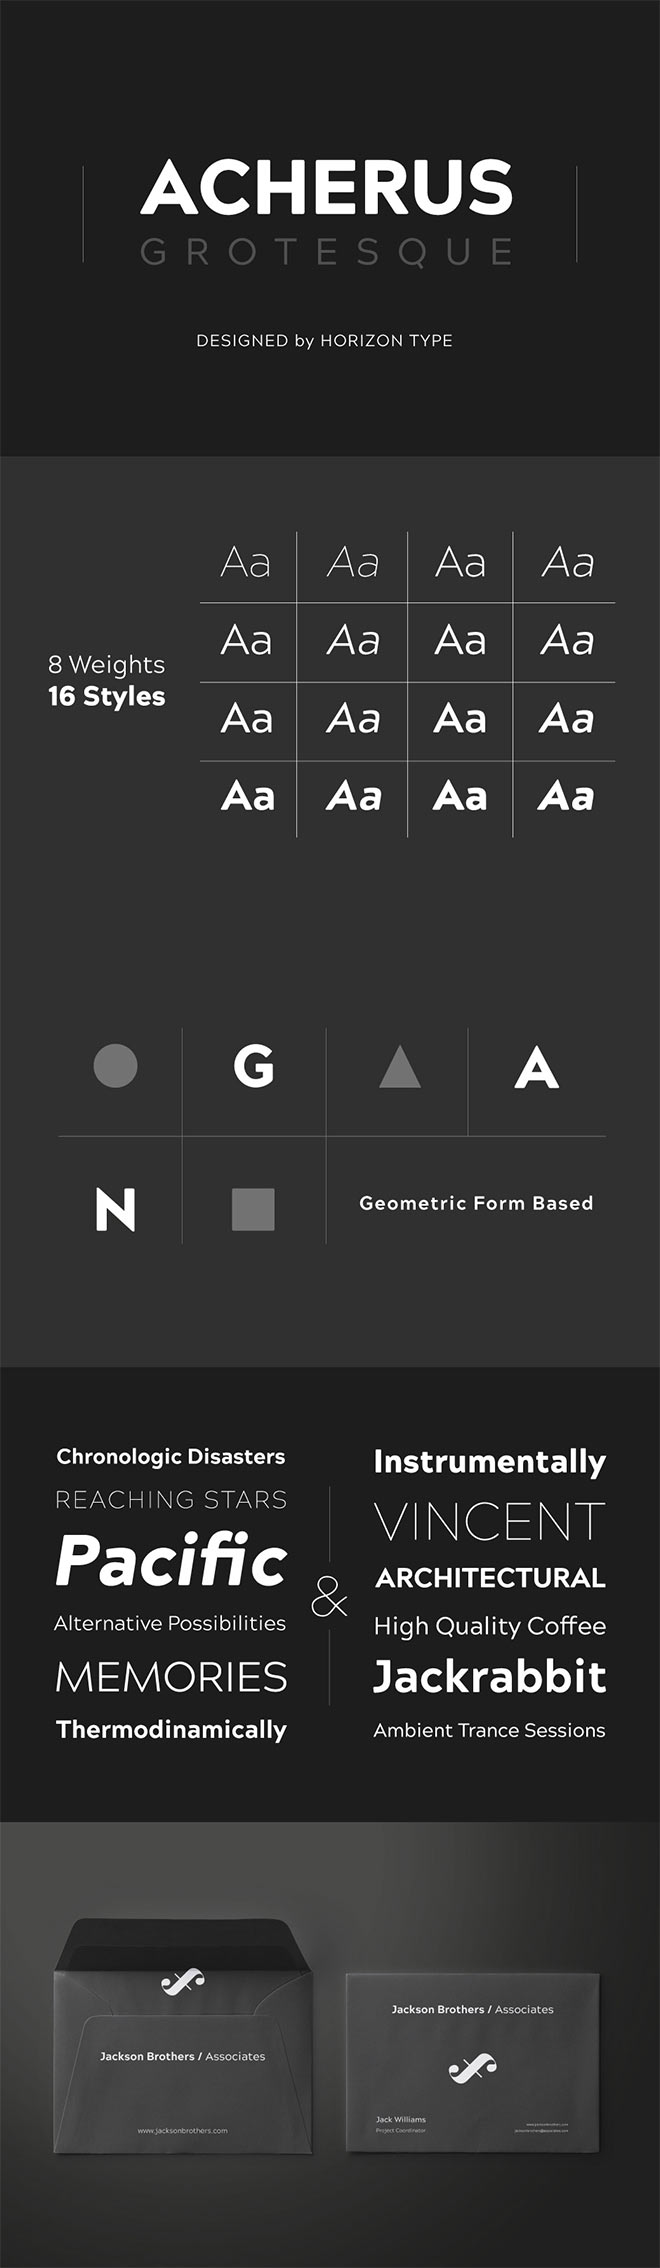 19 Essential Typefaces (Total of 233 Fonts) for Just $29 (99